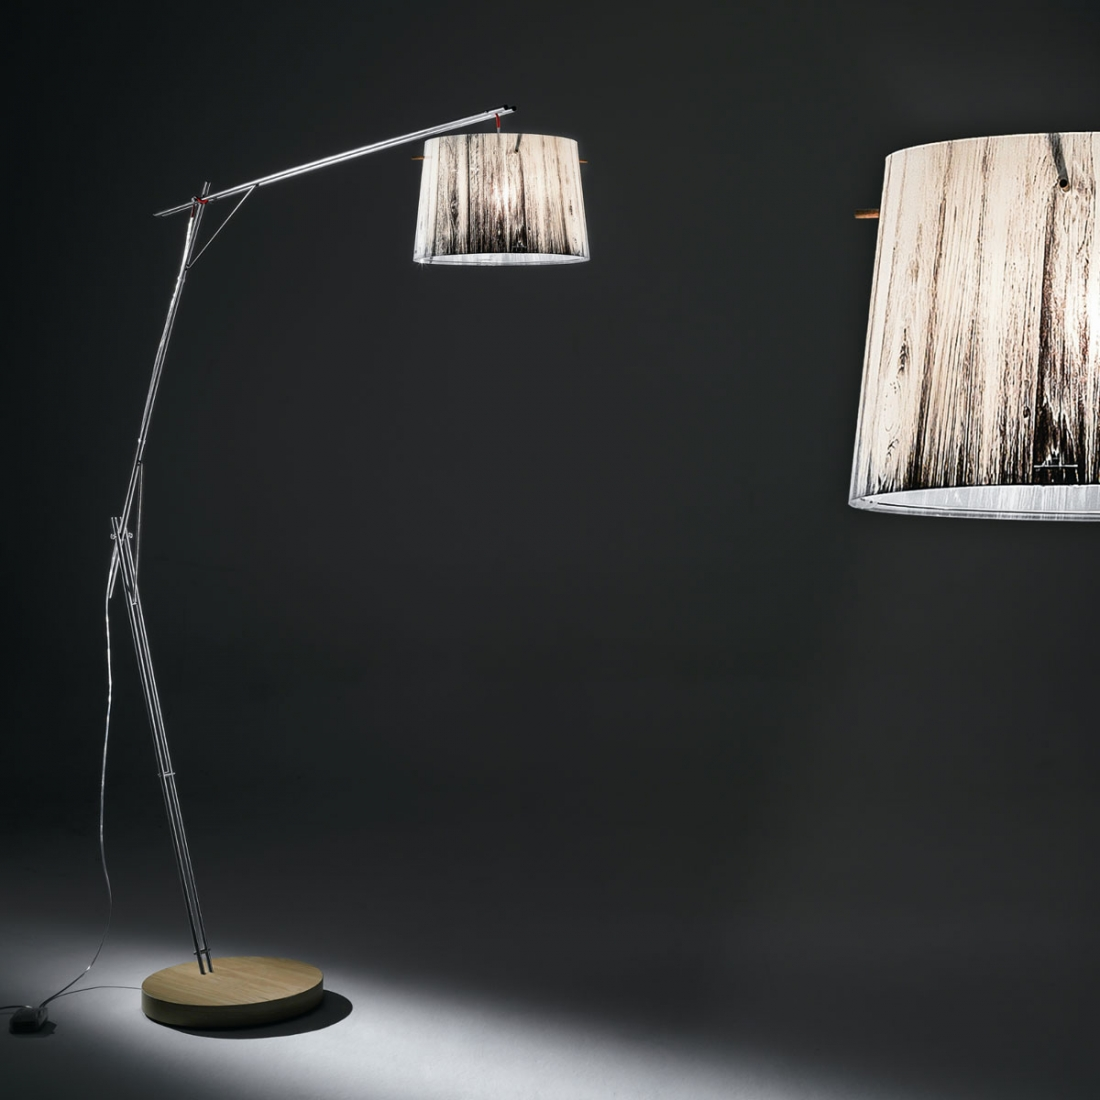 Lampadaire halogene woody slamp zendart design for Lampadaire interieur design